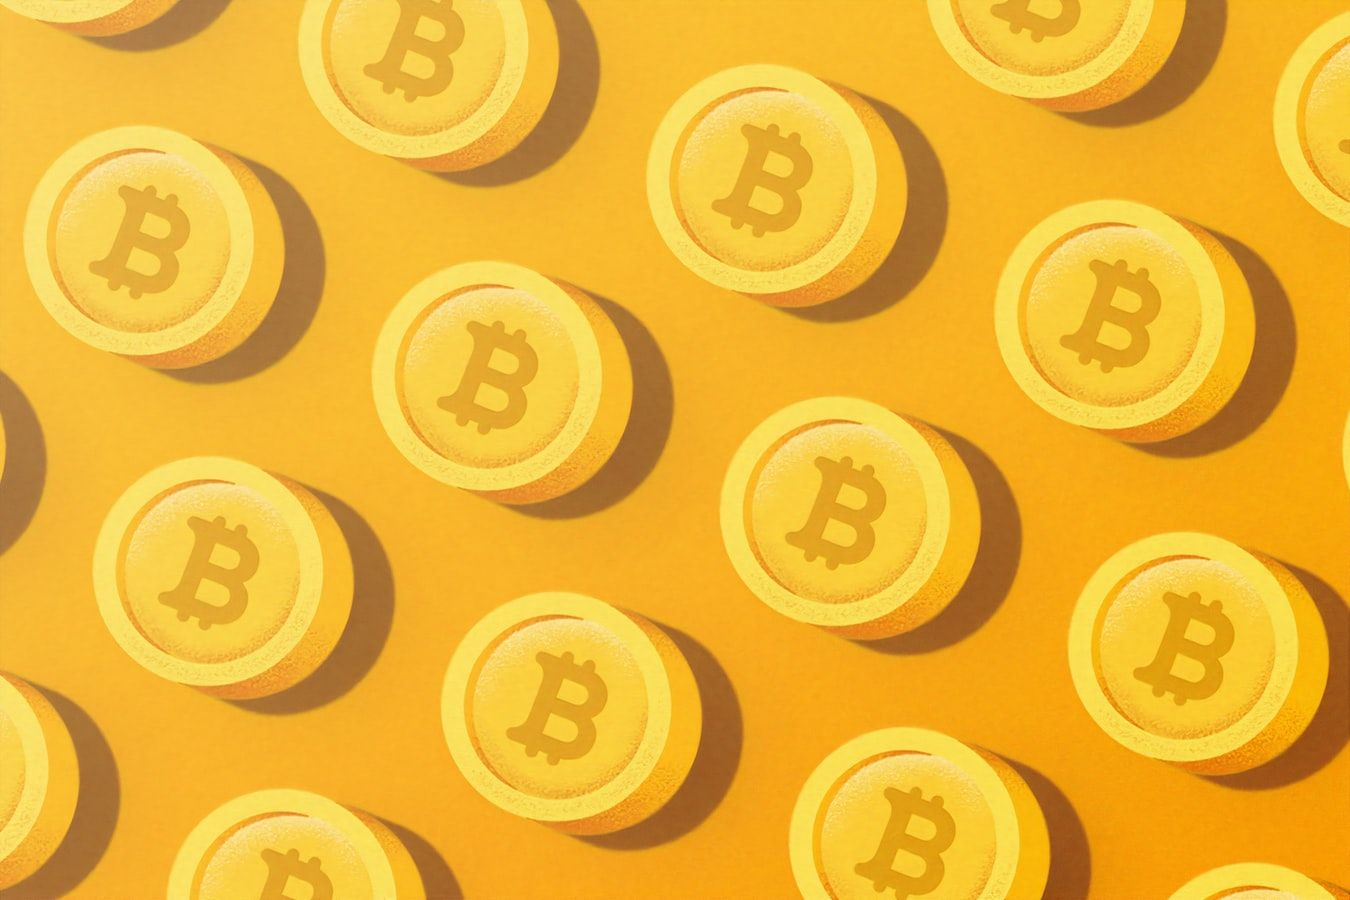 /cryptocurrency-is-becoming-so-widespread-that-it-is-better-not-to-shy-away-from-it-andreas-berg-sm1n3xft feature image